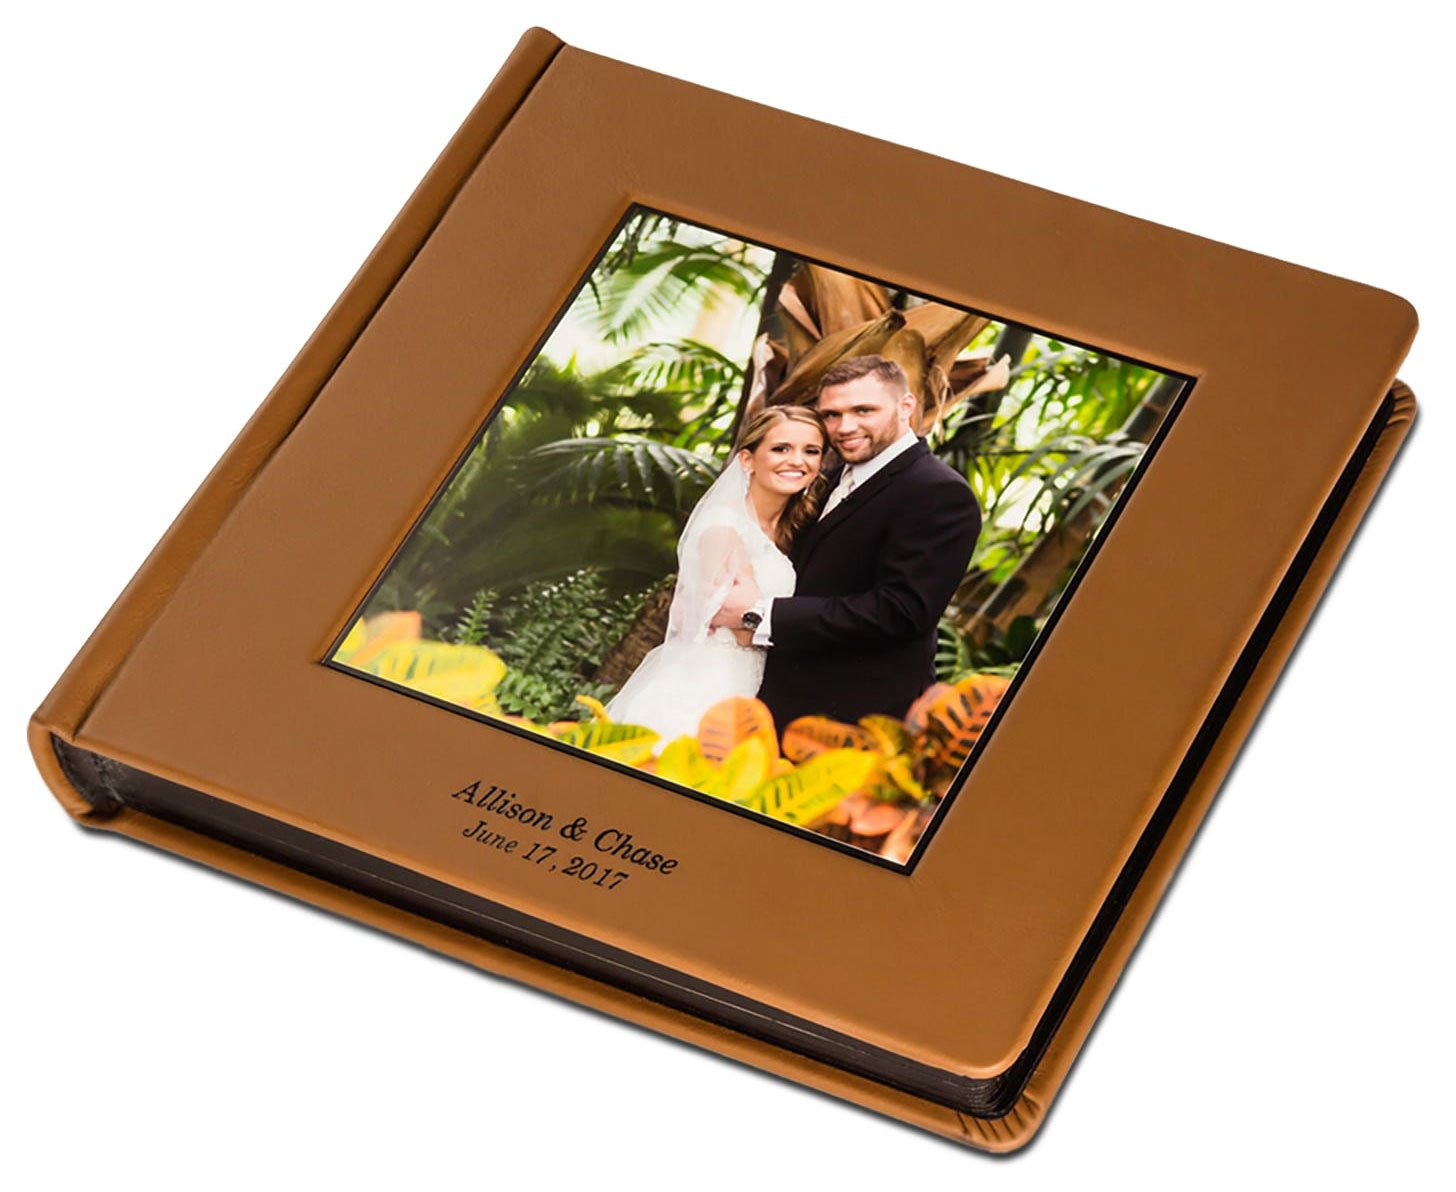 Zookbinders | Matted Albums